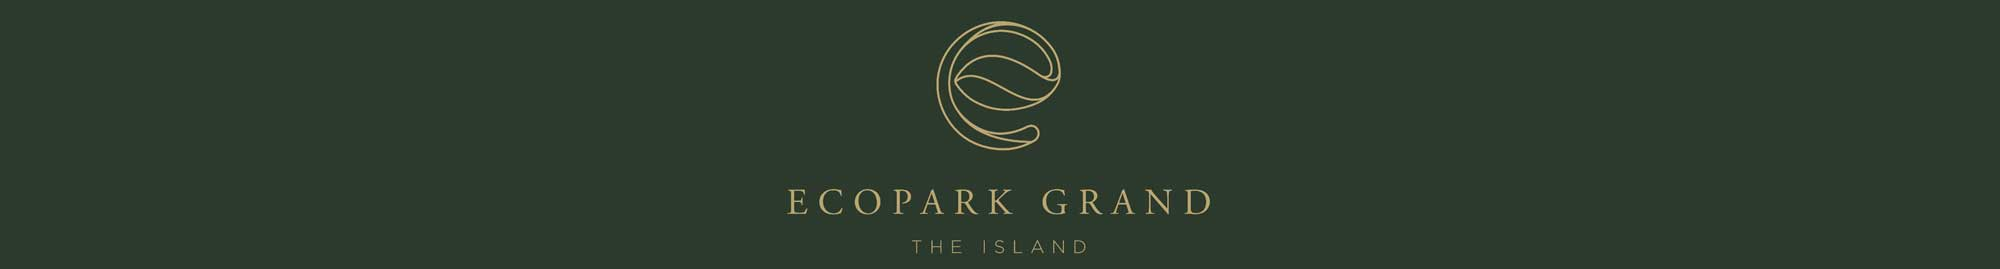 Ecopark Grand The Island-footer